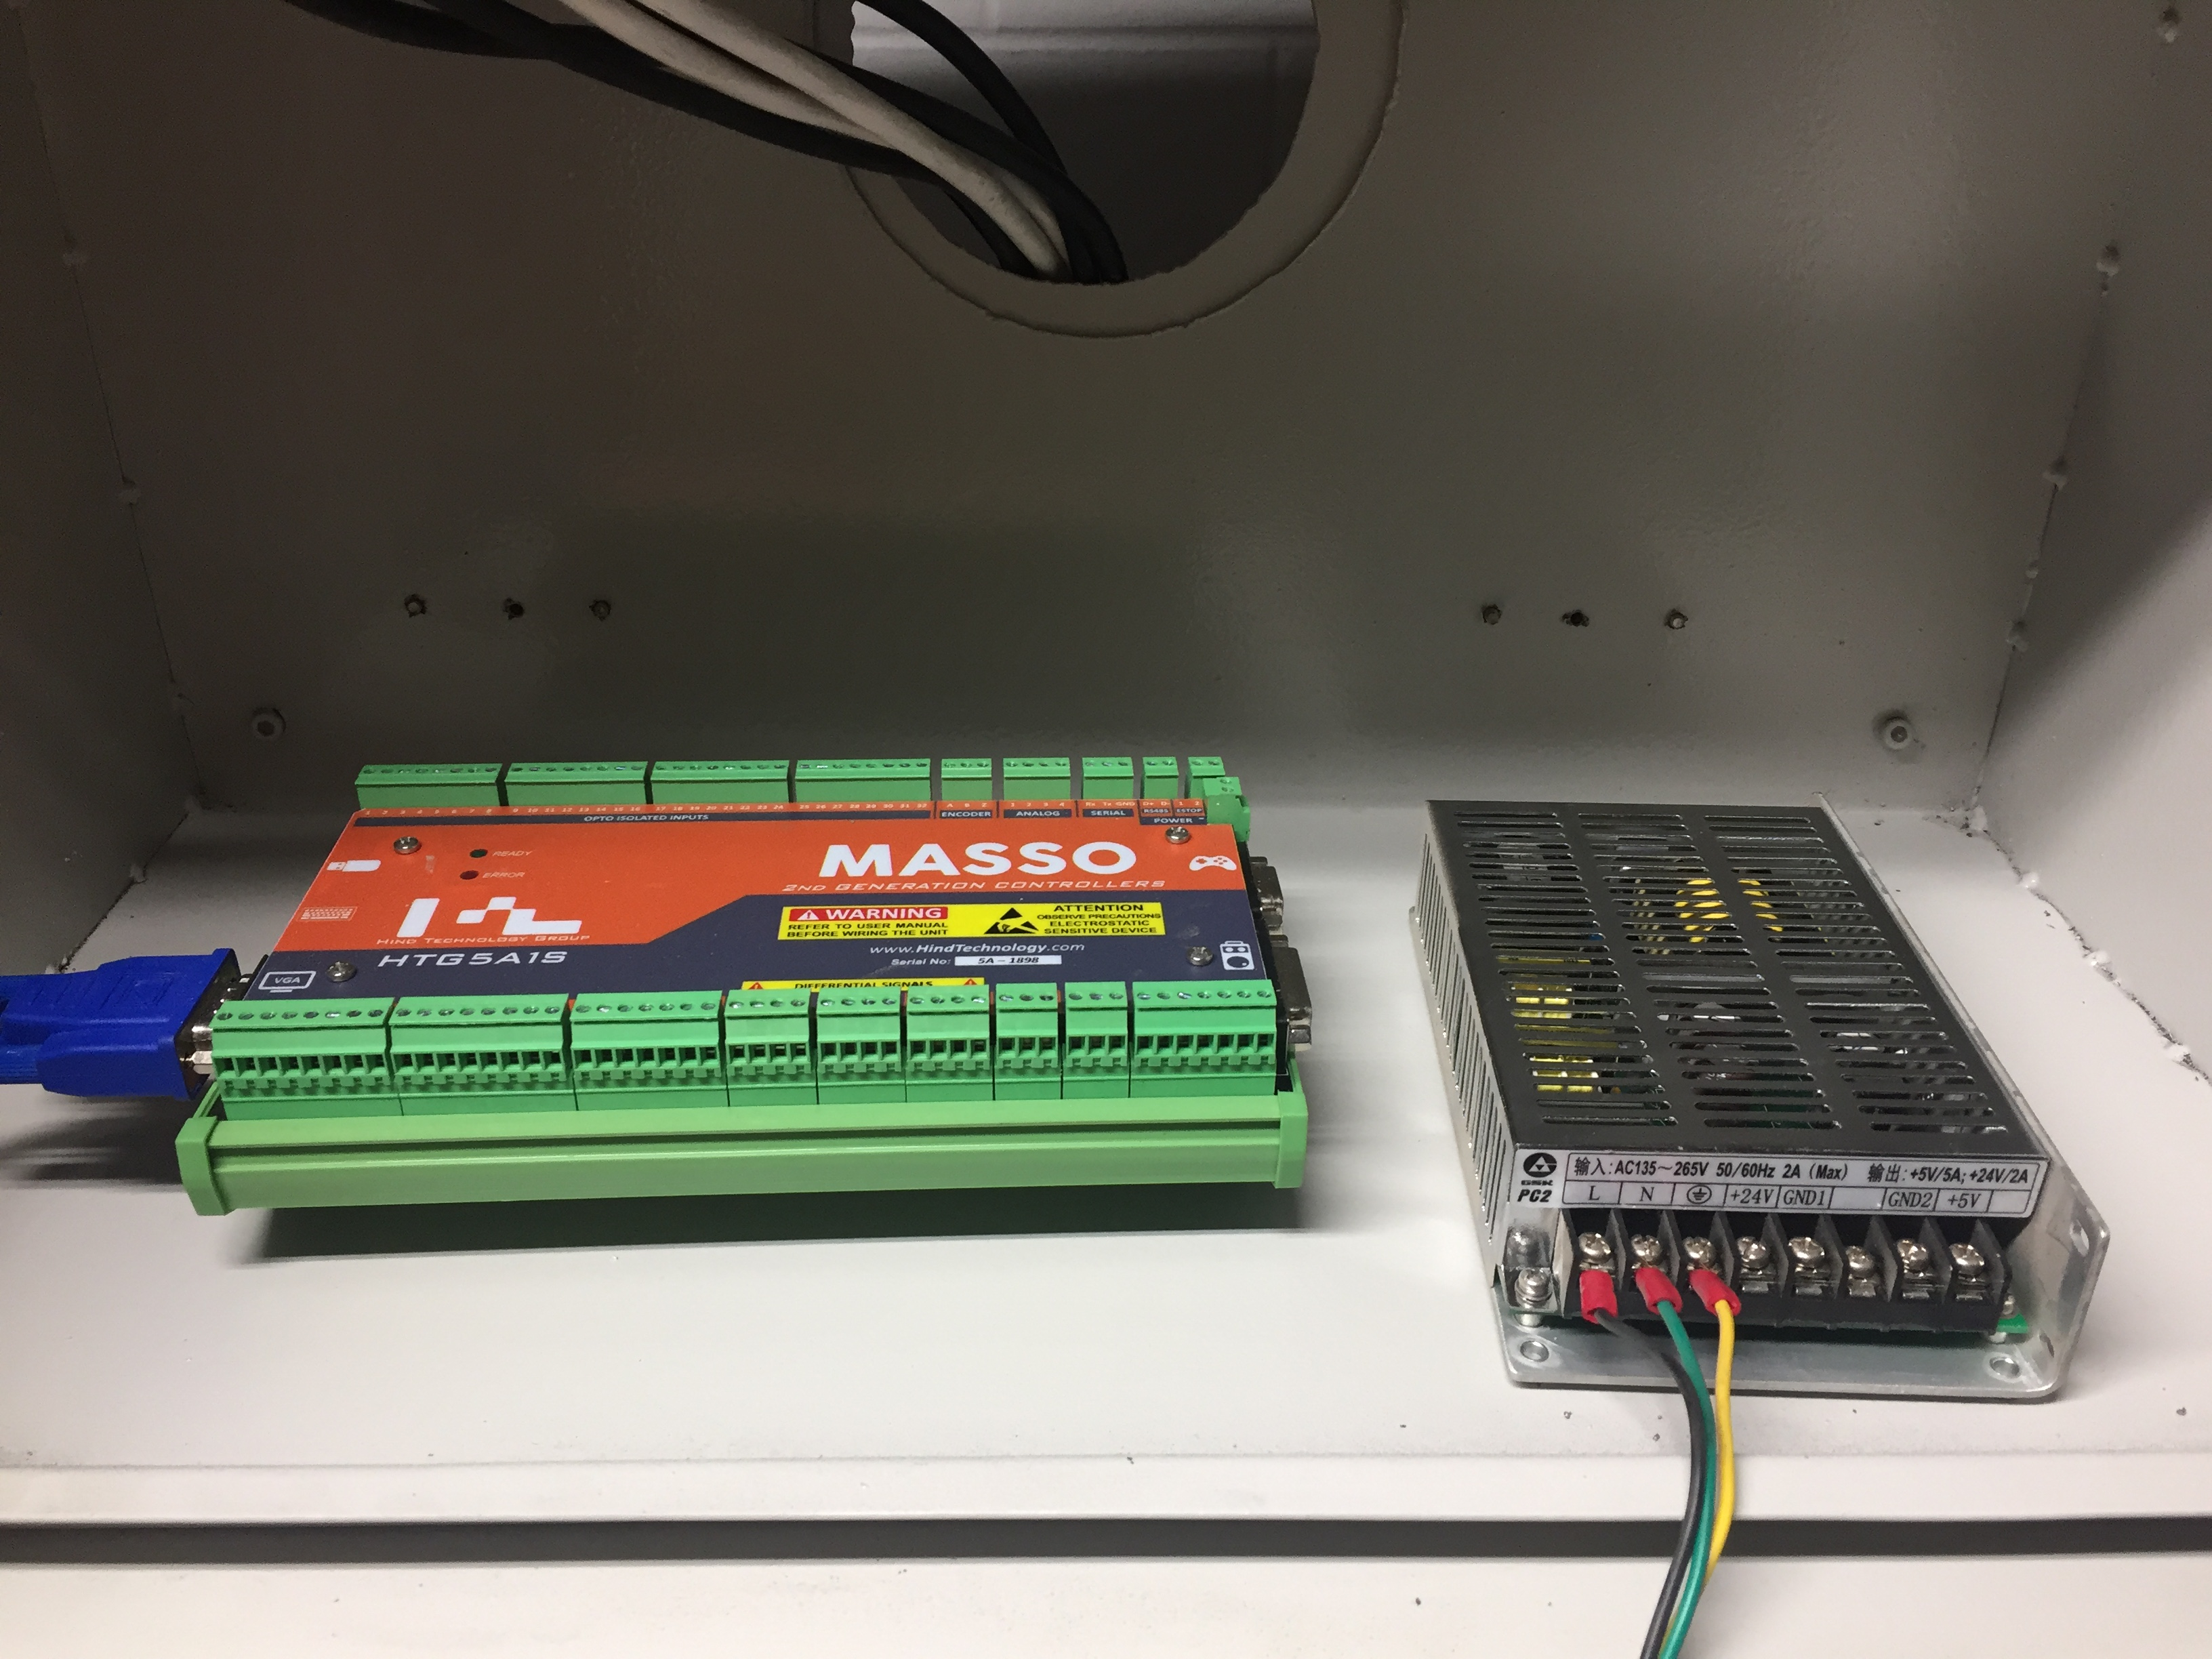 Installing a Masso CNC - Projects - VHS Talk - Vancouver